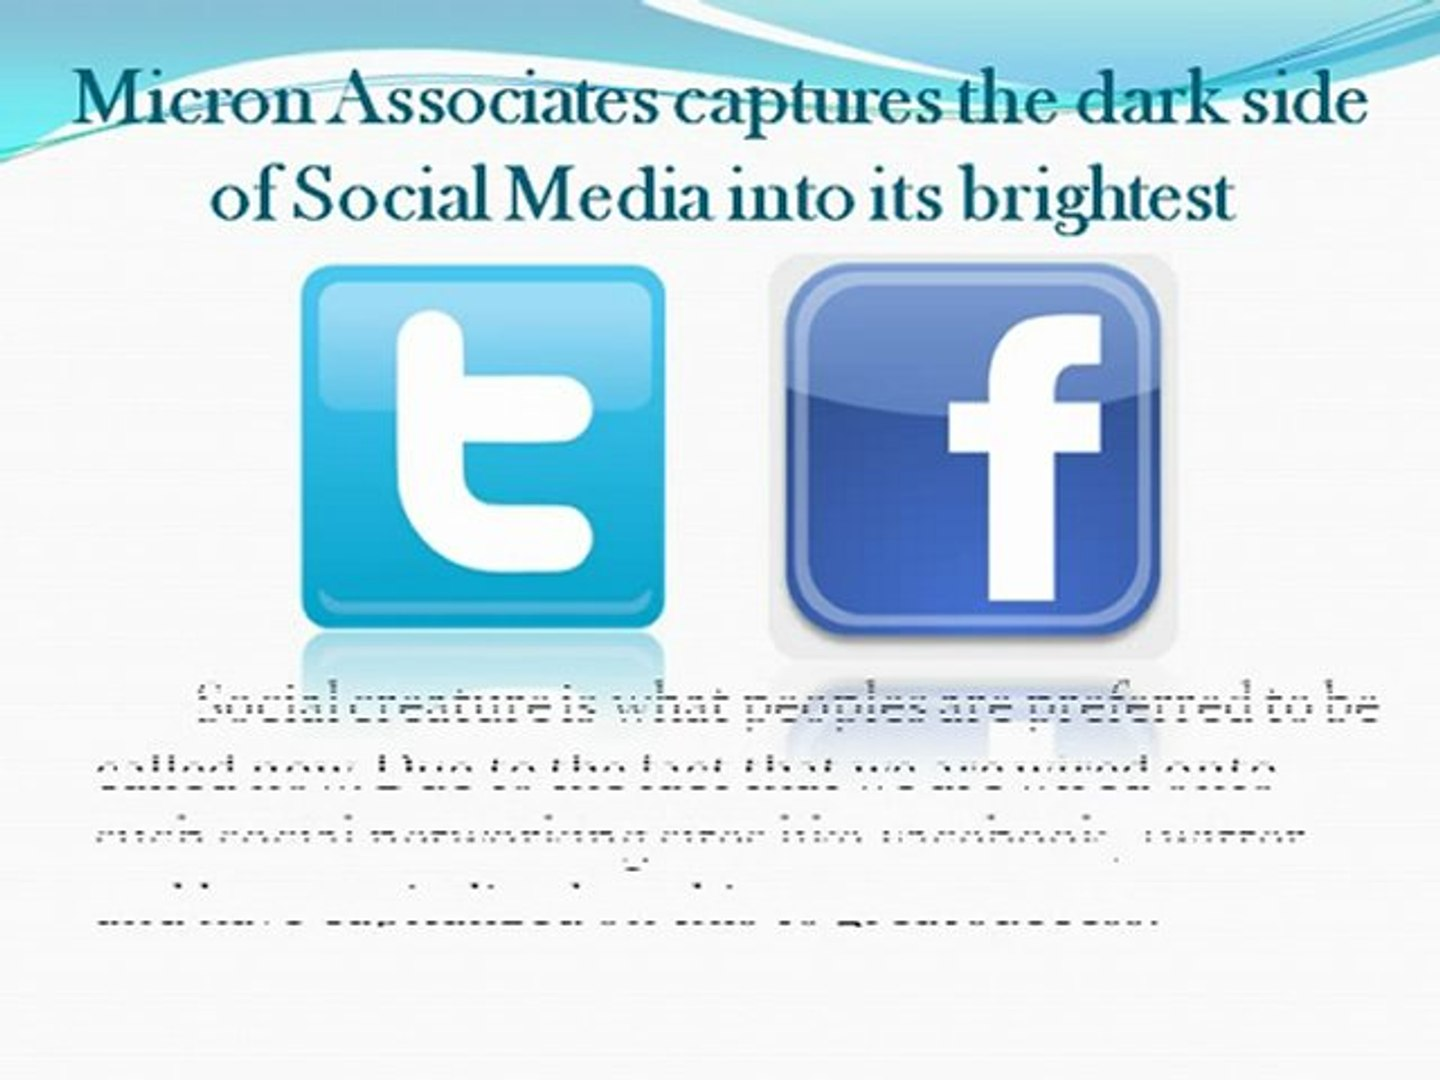 Micron Associates captures the dark side of Social Media into its brightest